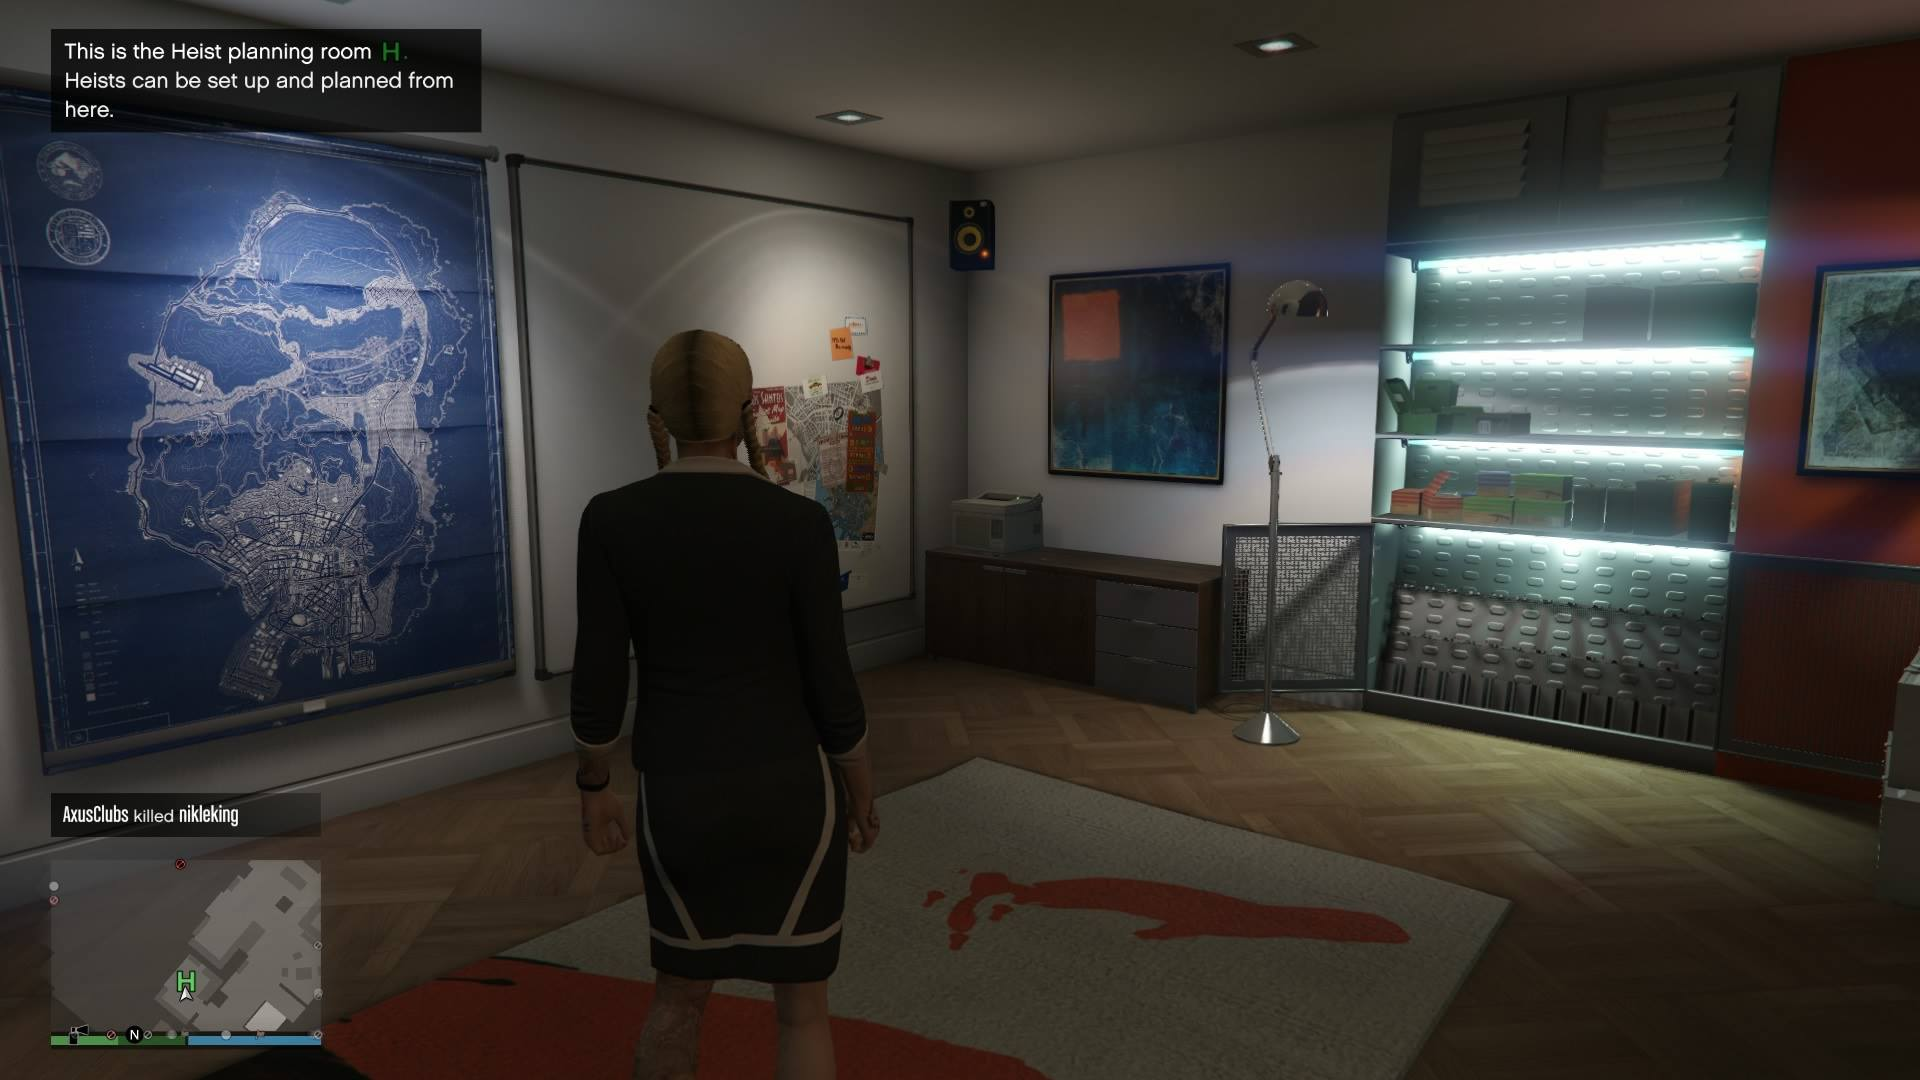 Go Back To Your Apartment And You Ll Walk Into New Heist Planning Room Re Now Able Host Lead Own Heists